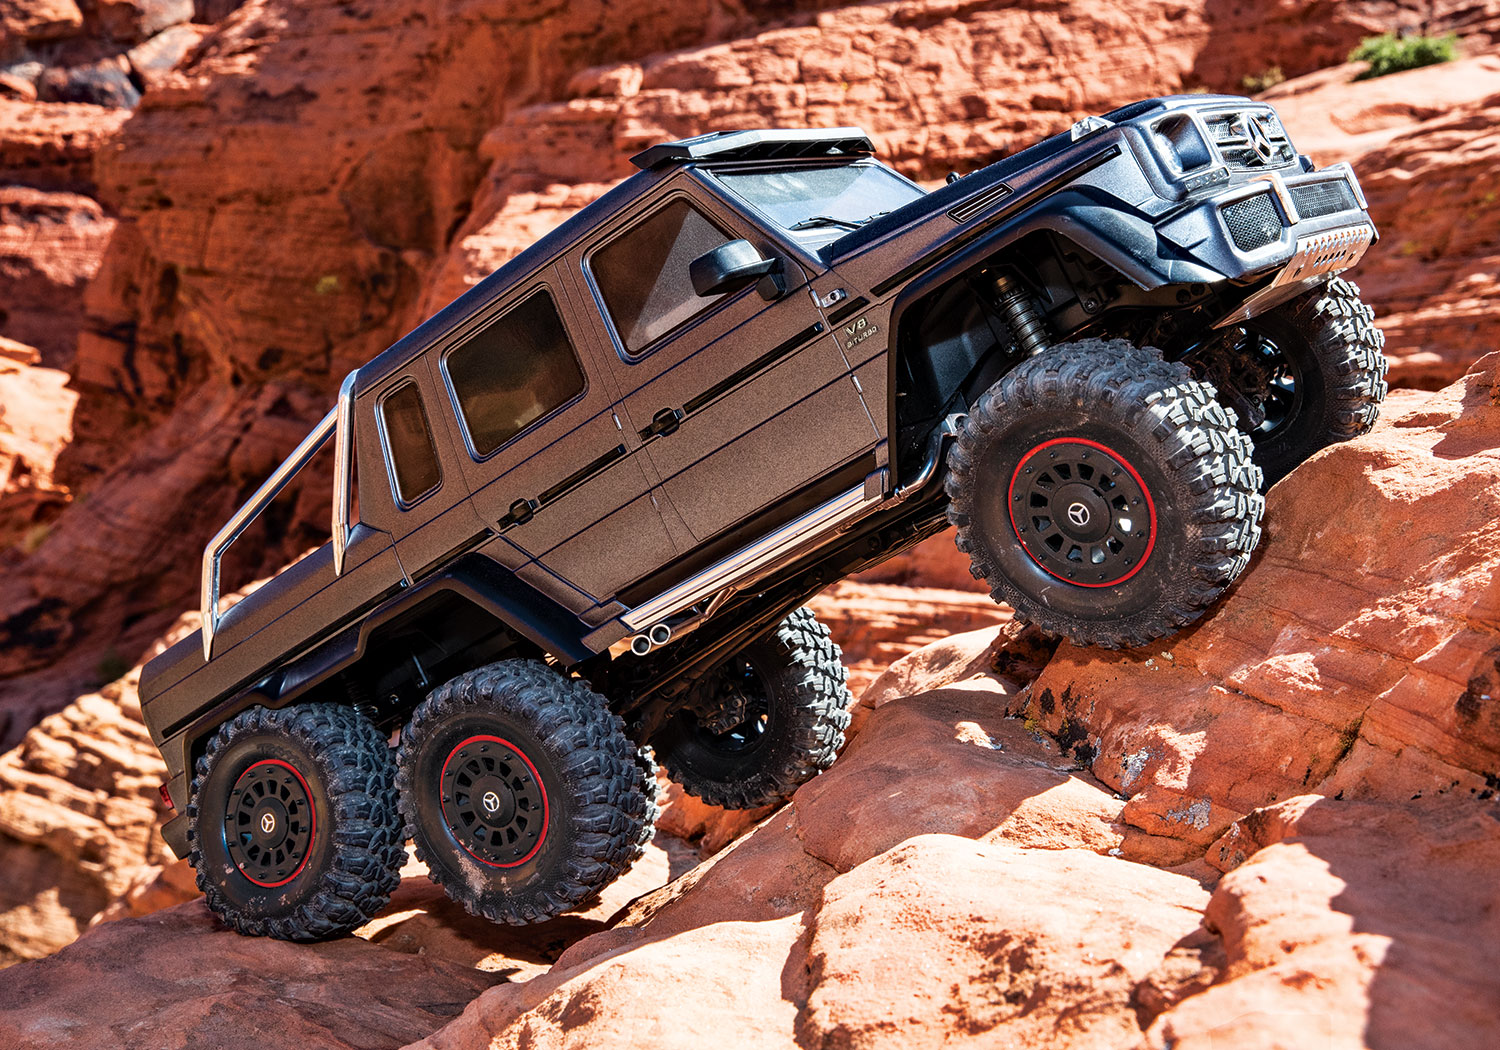 TRX-4 Mercedes-Benz 6x6 Rock Crawler